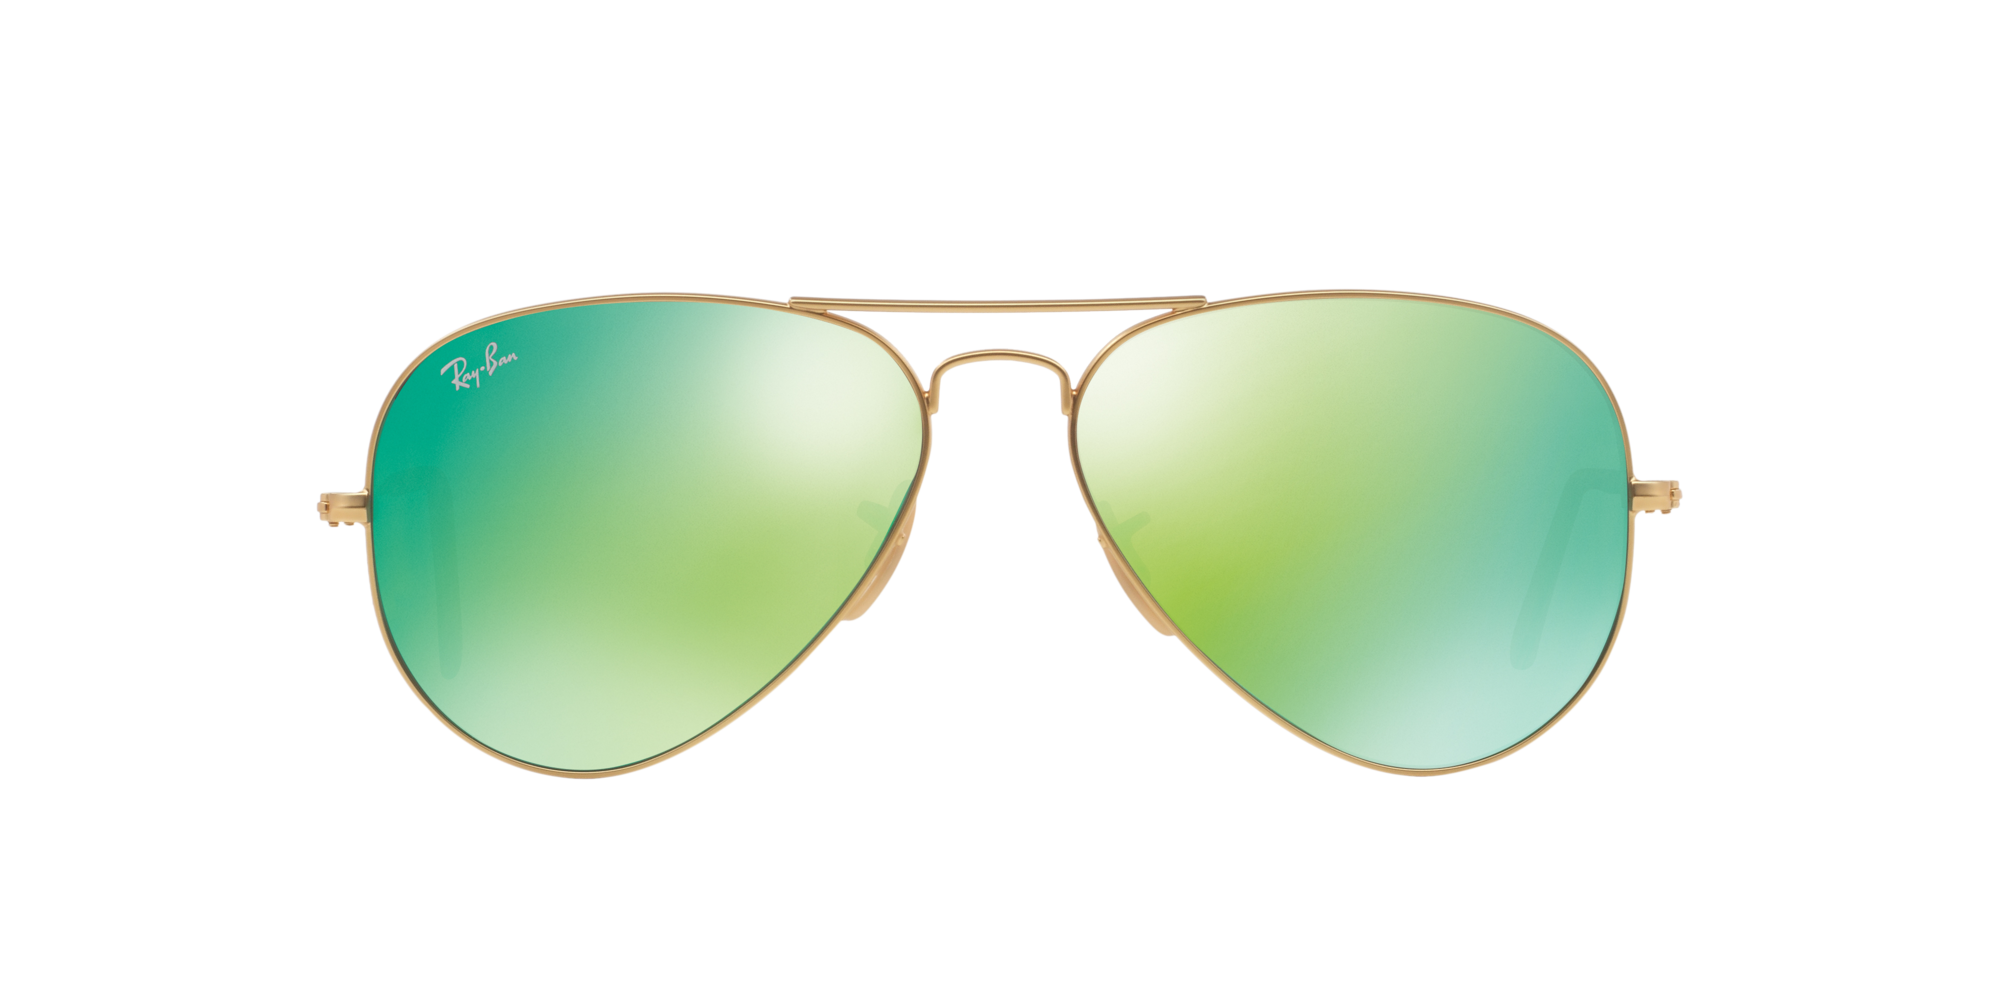 RAY-BAN AVIATOR CLASSIC RB 3025 112/19 55MM-360